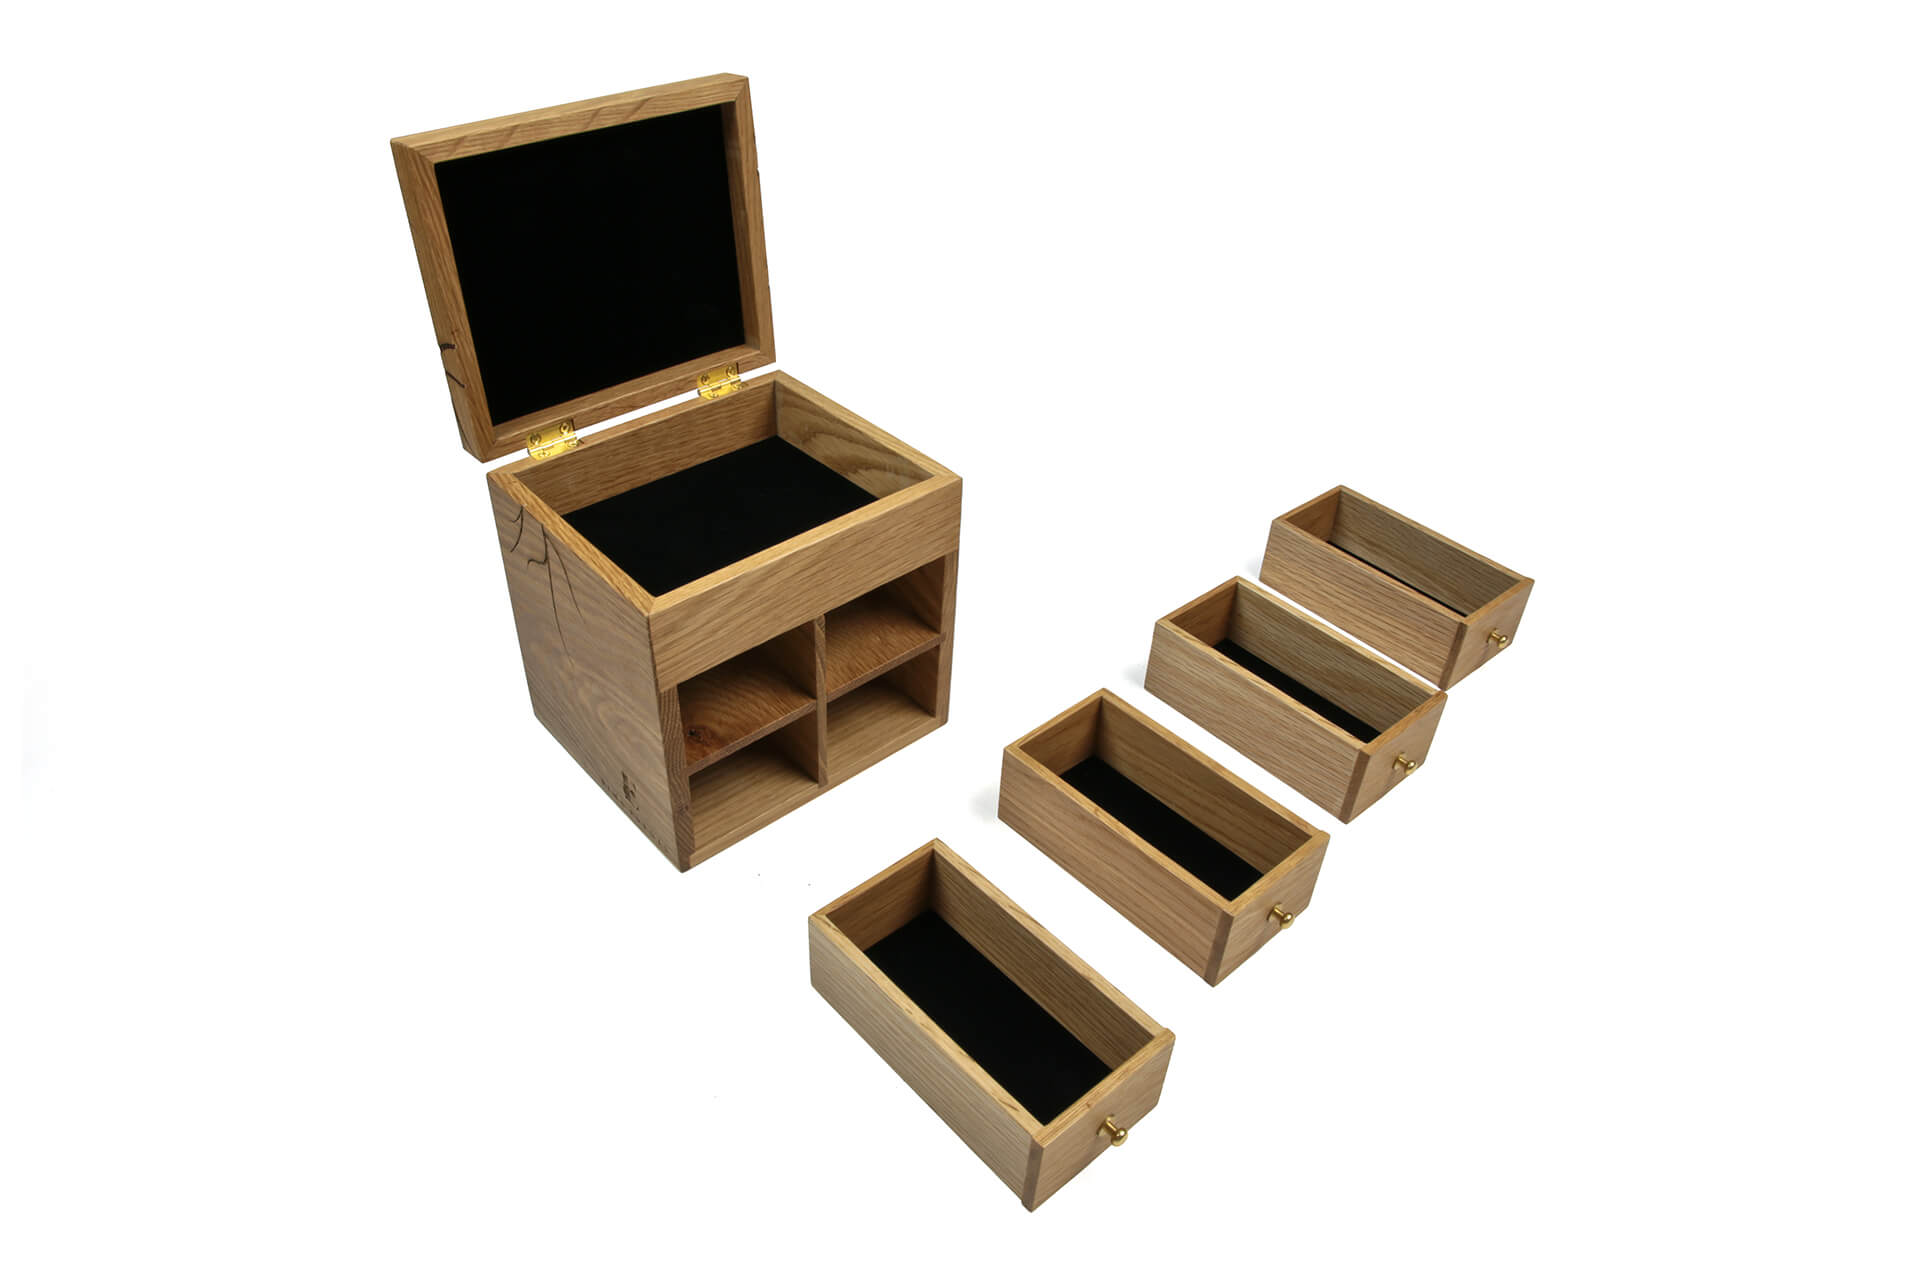 natural oak jewelry box design with laser engraving